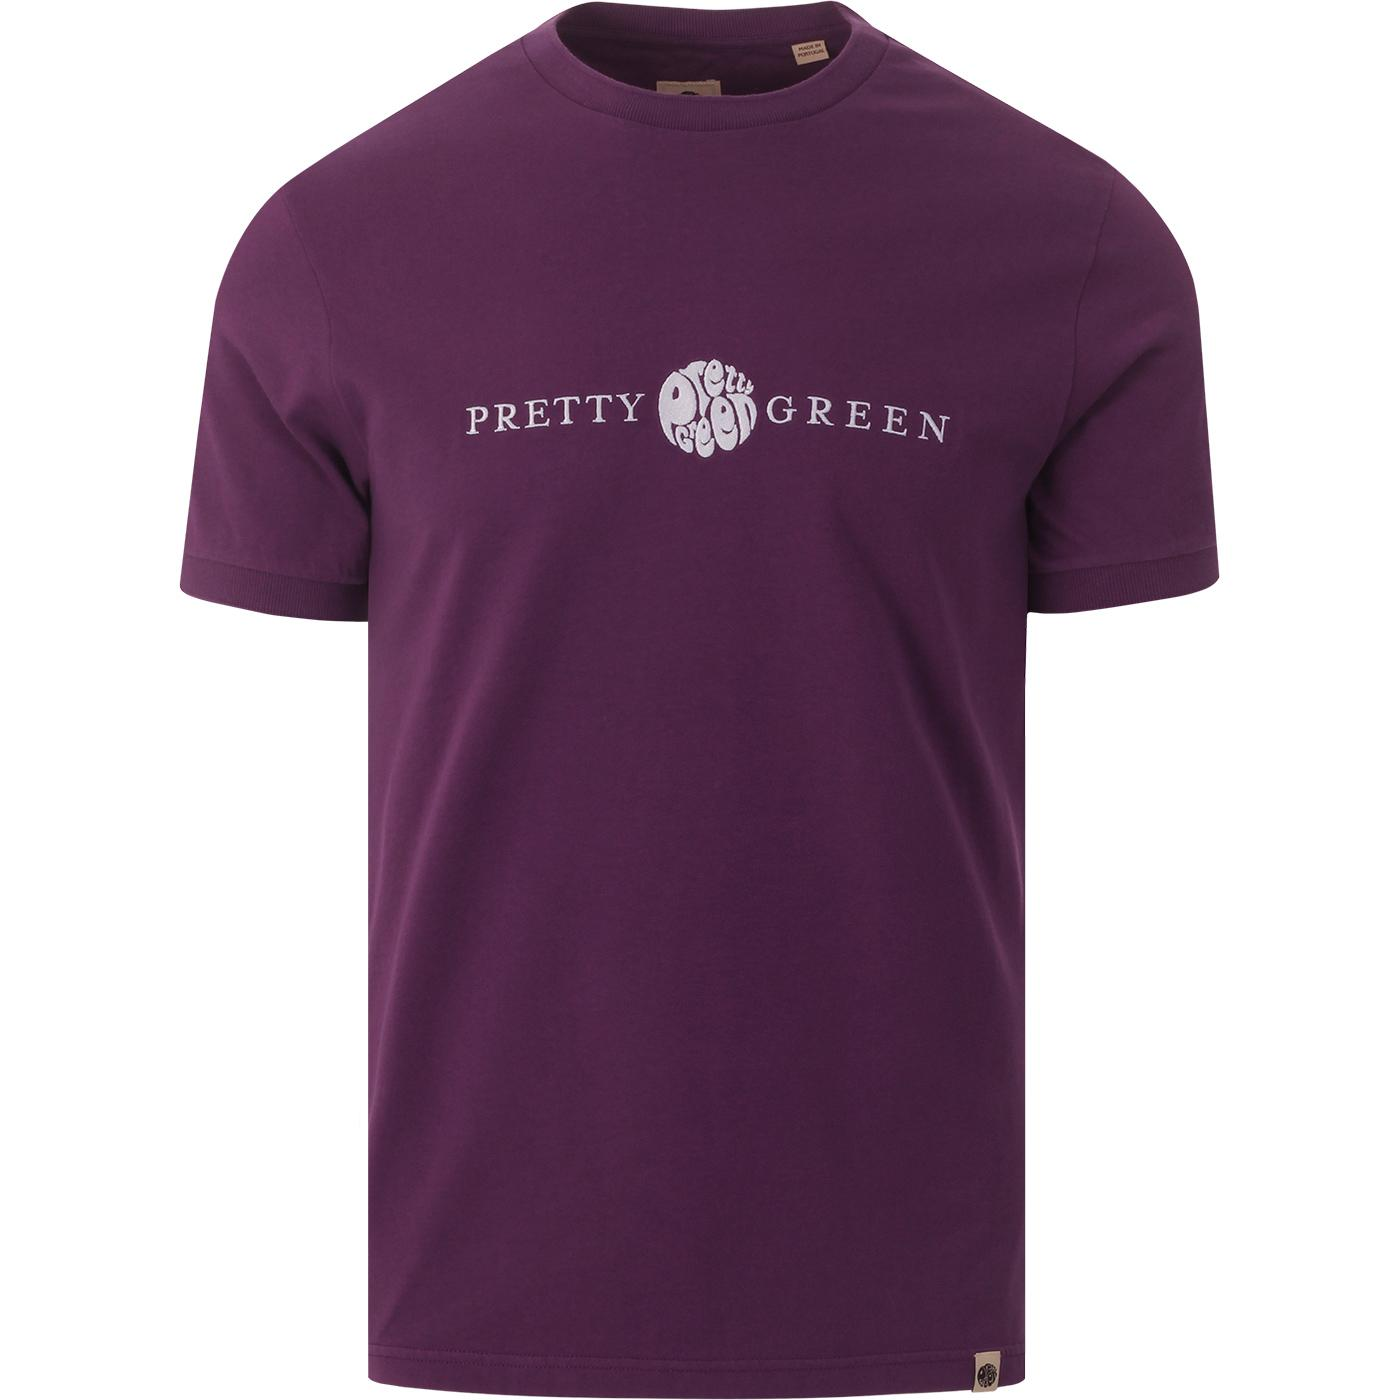 S20MU15000089 embroidered tee purple